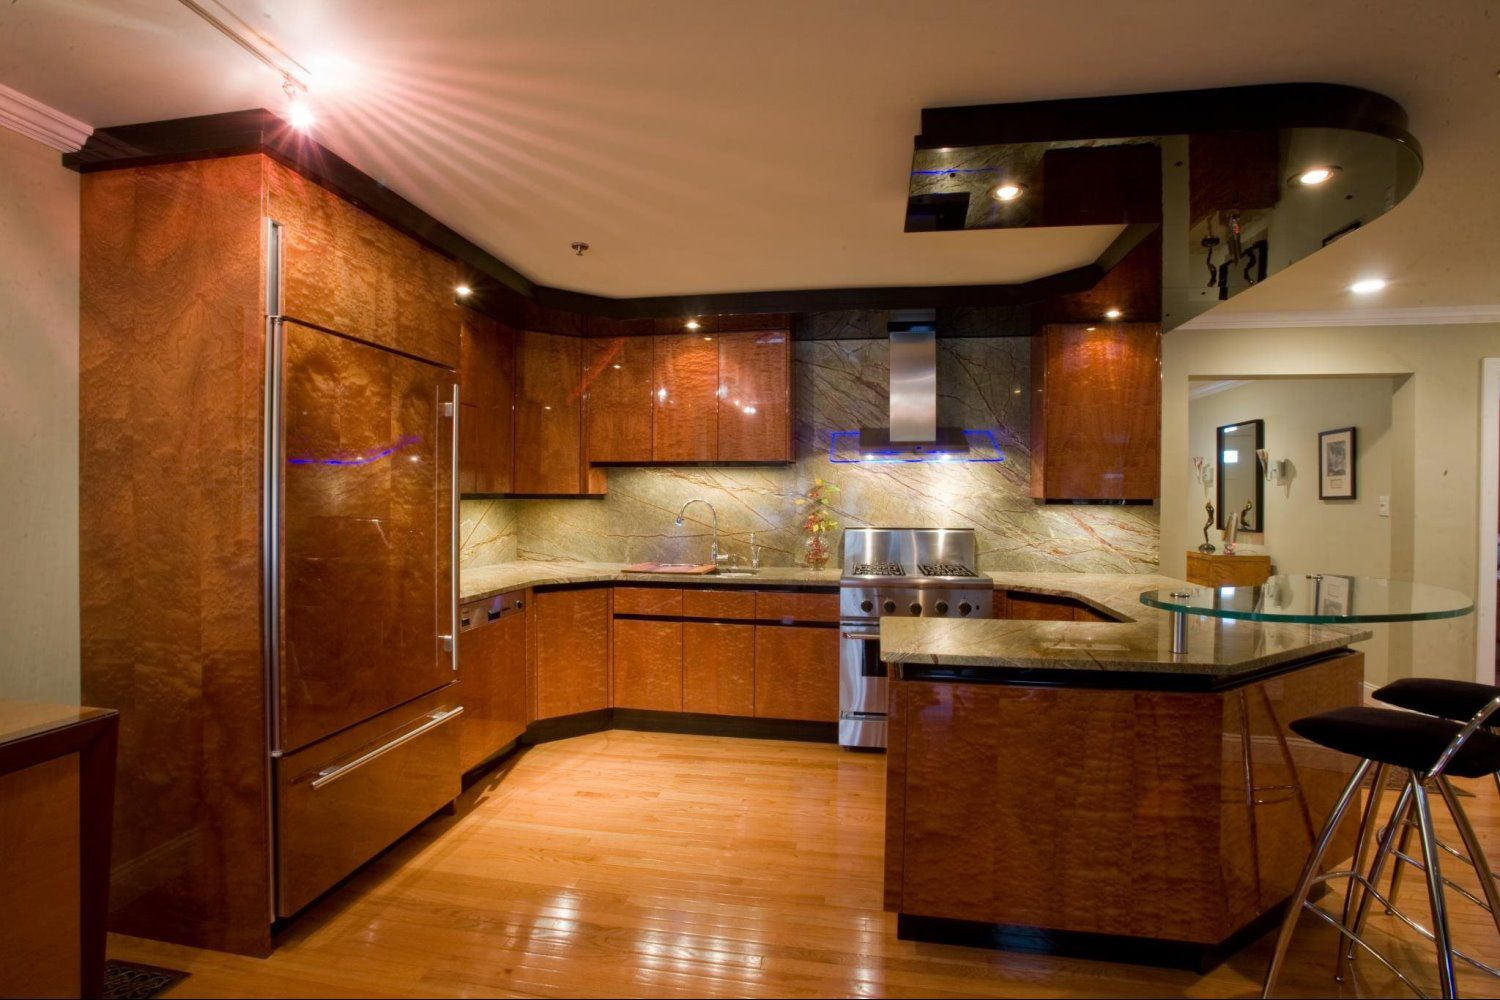 Kitchen And Bath Remodeling In Flint Michigan